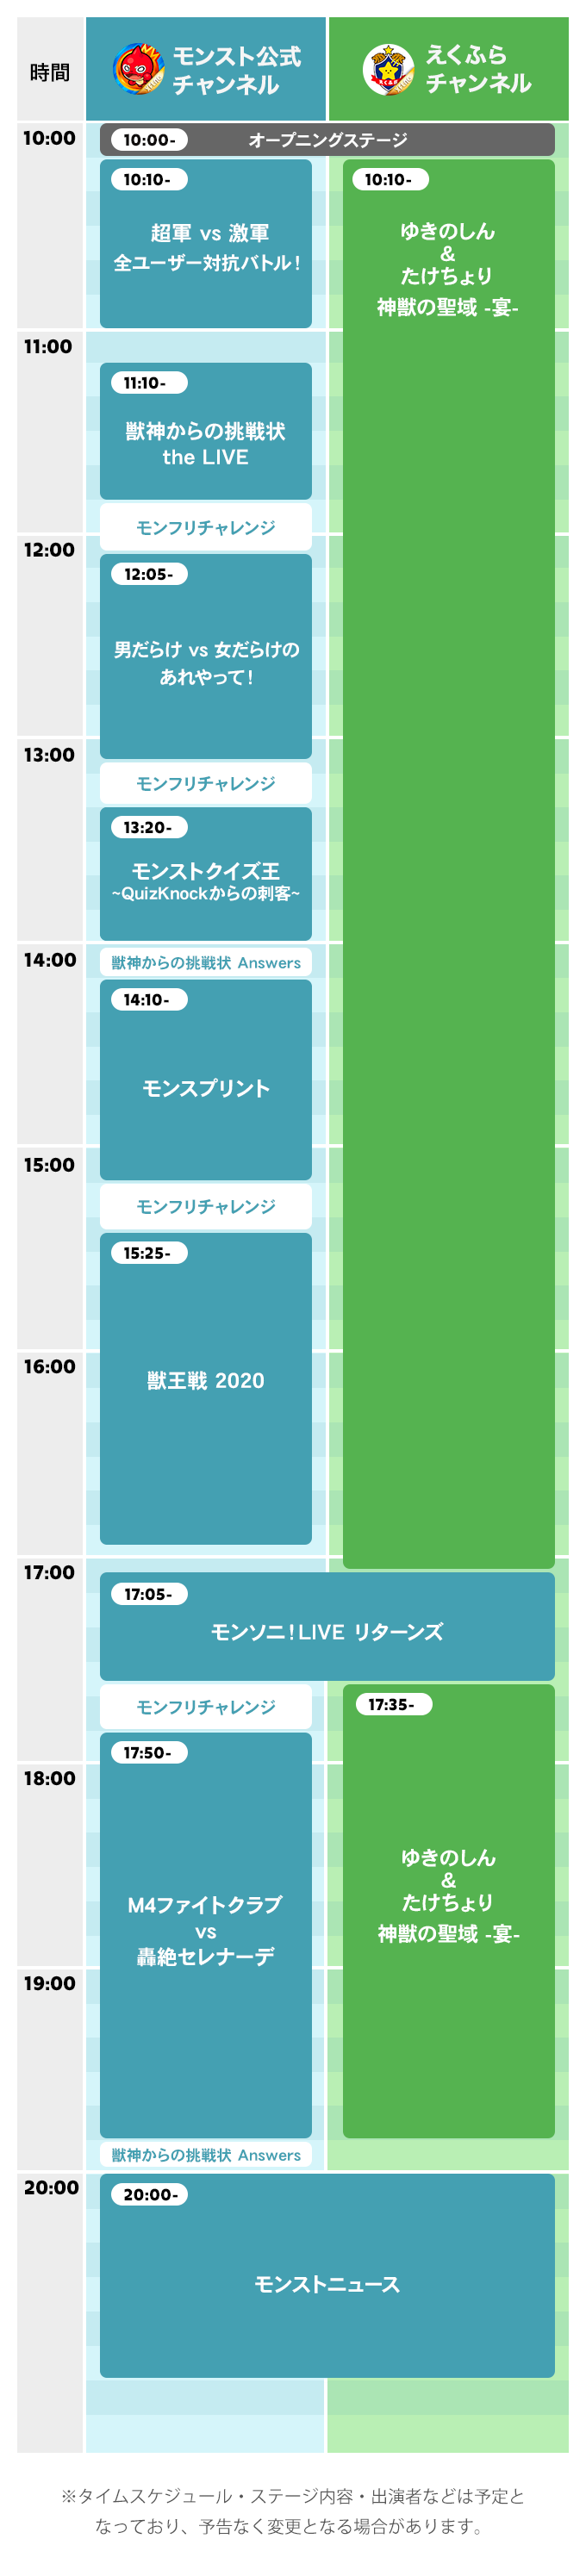 time_schedule.png